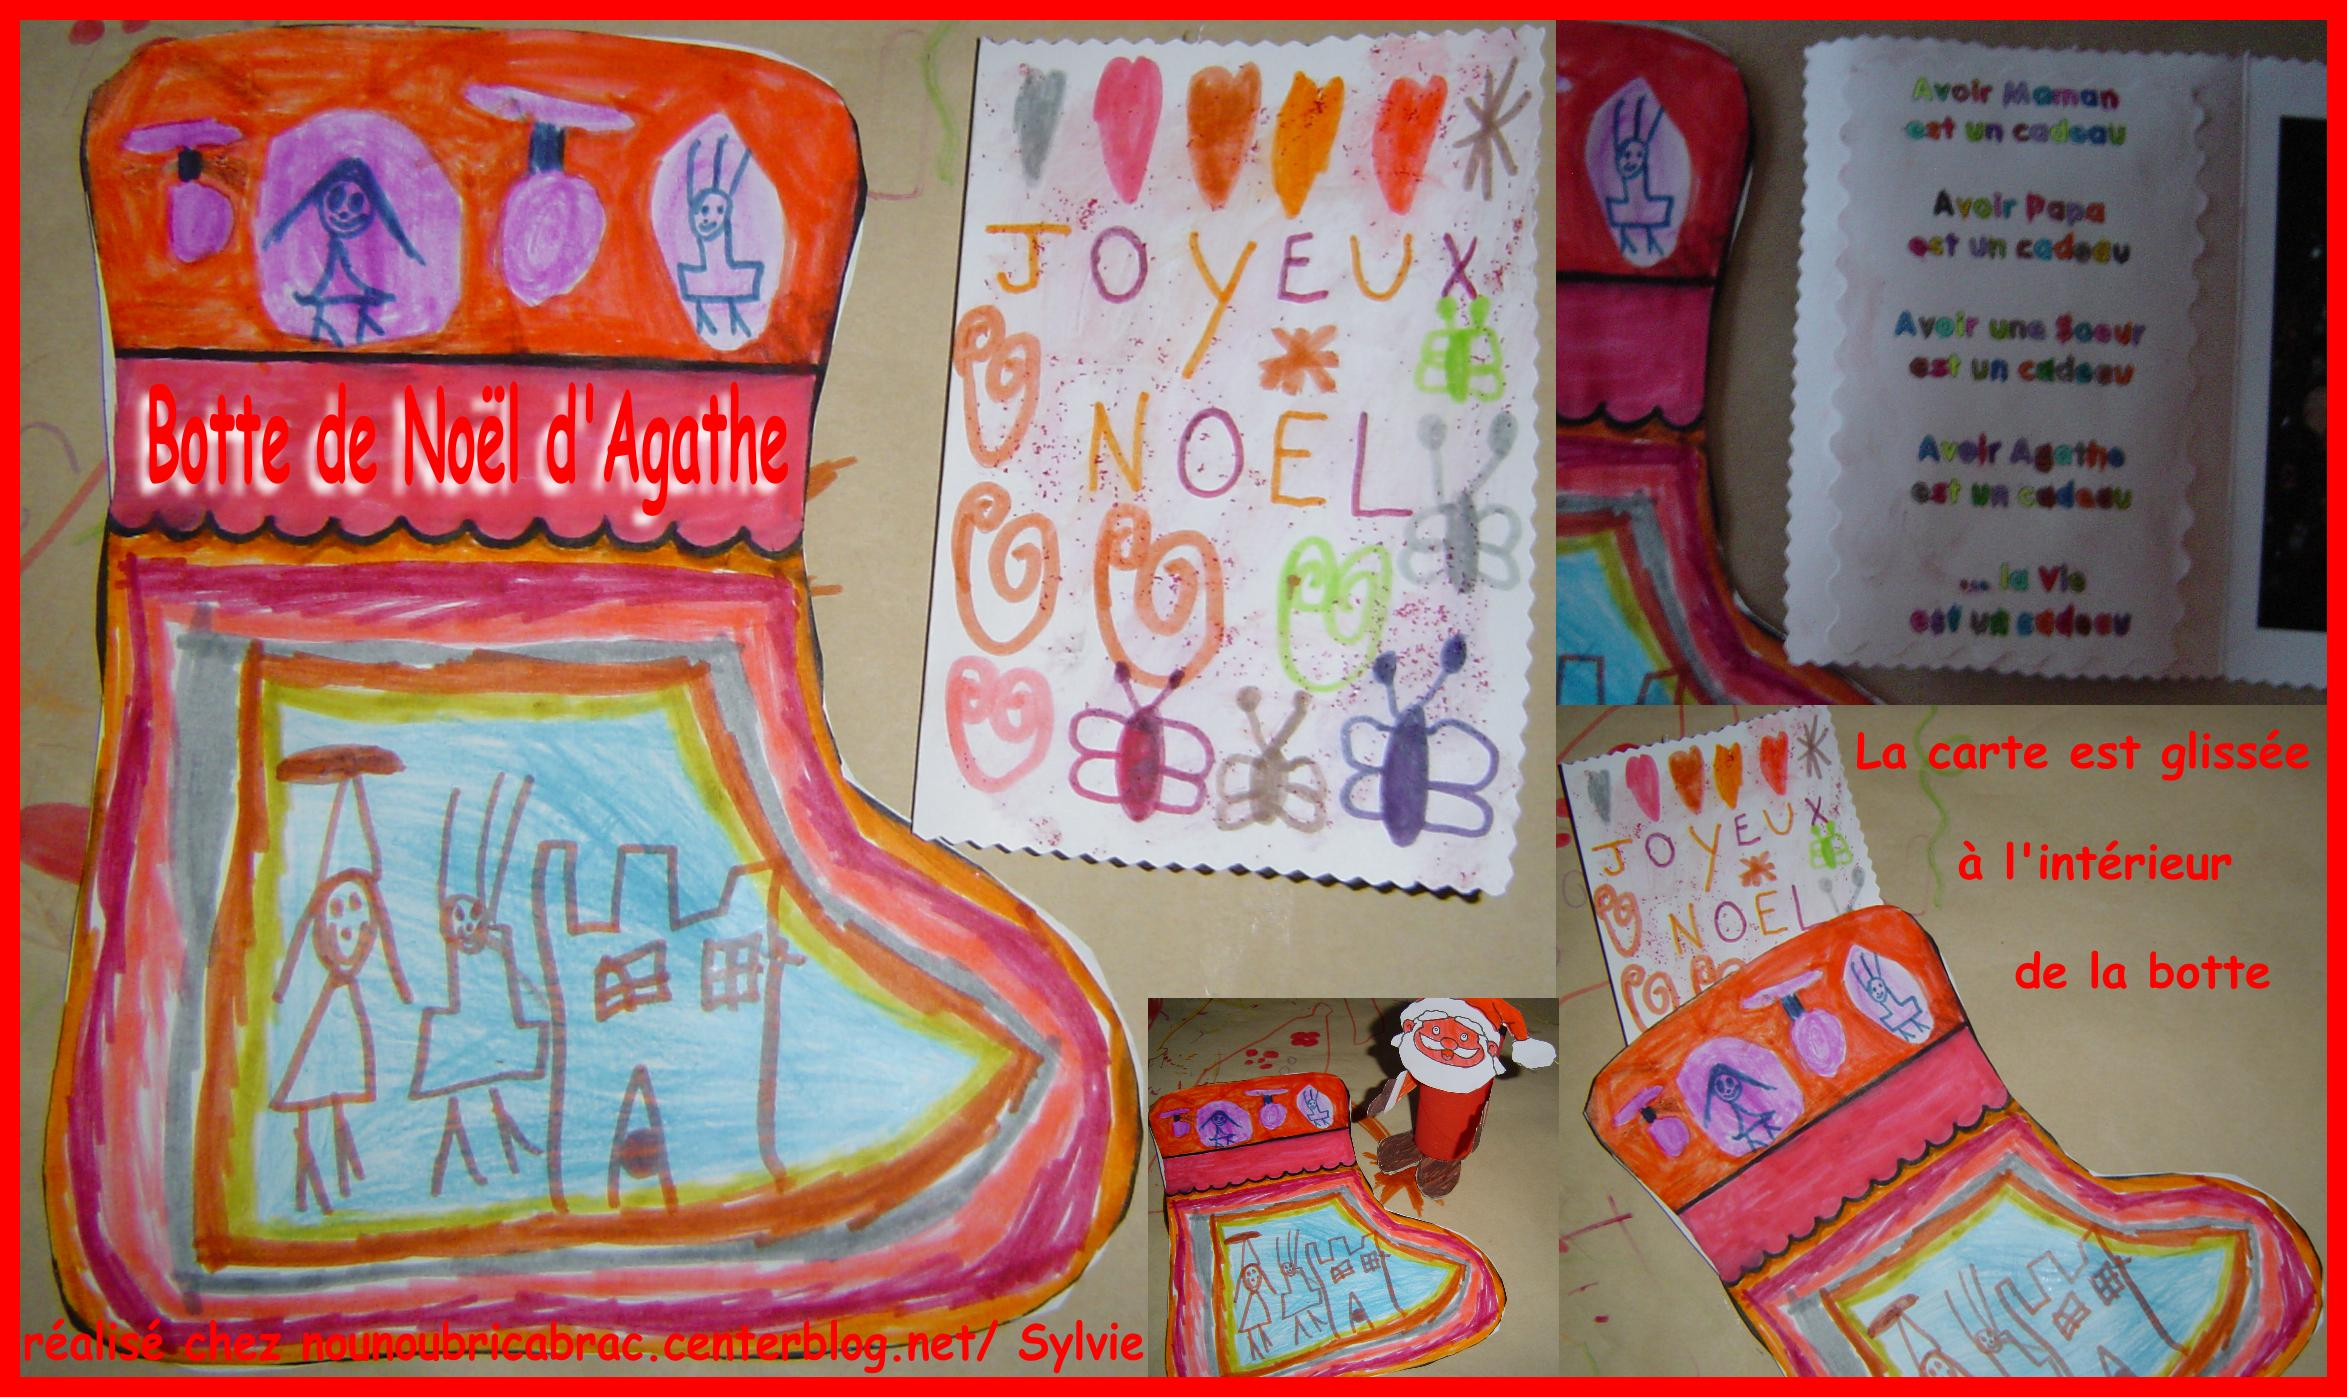 Botte de Nol ralise par Agathe, 5 ans 1/2